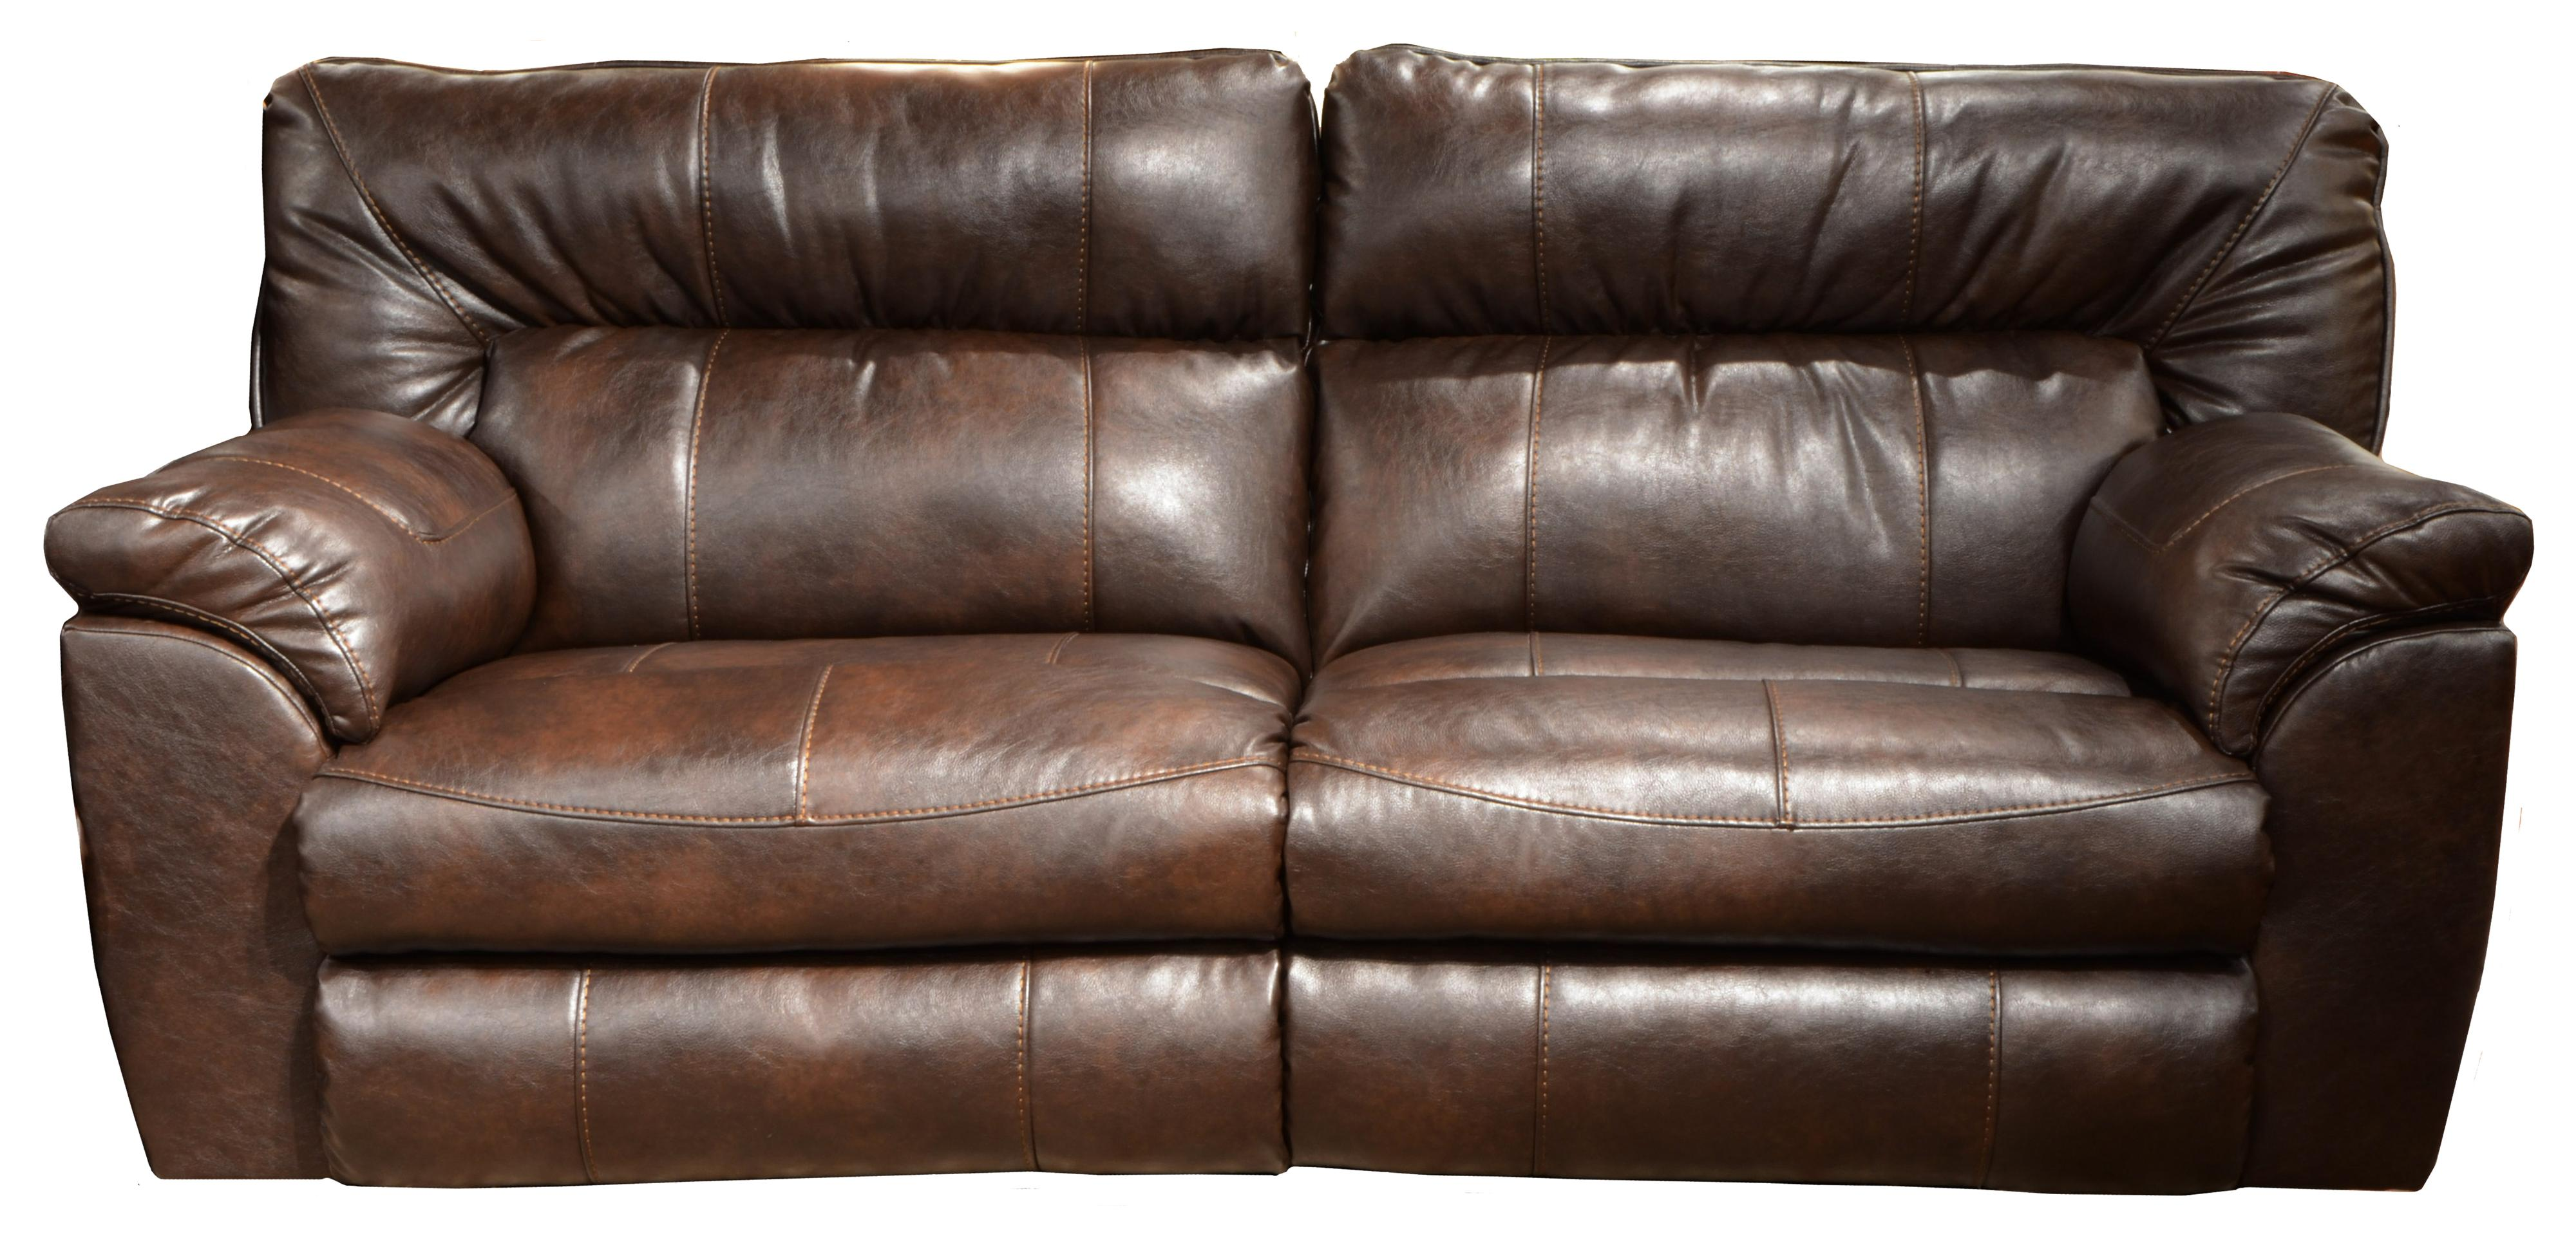 Catnapper Nolan 4041 Extra Wide Reclining Sofa Northeast